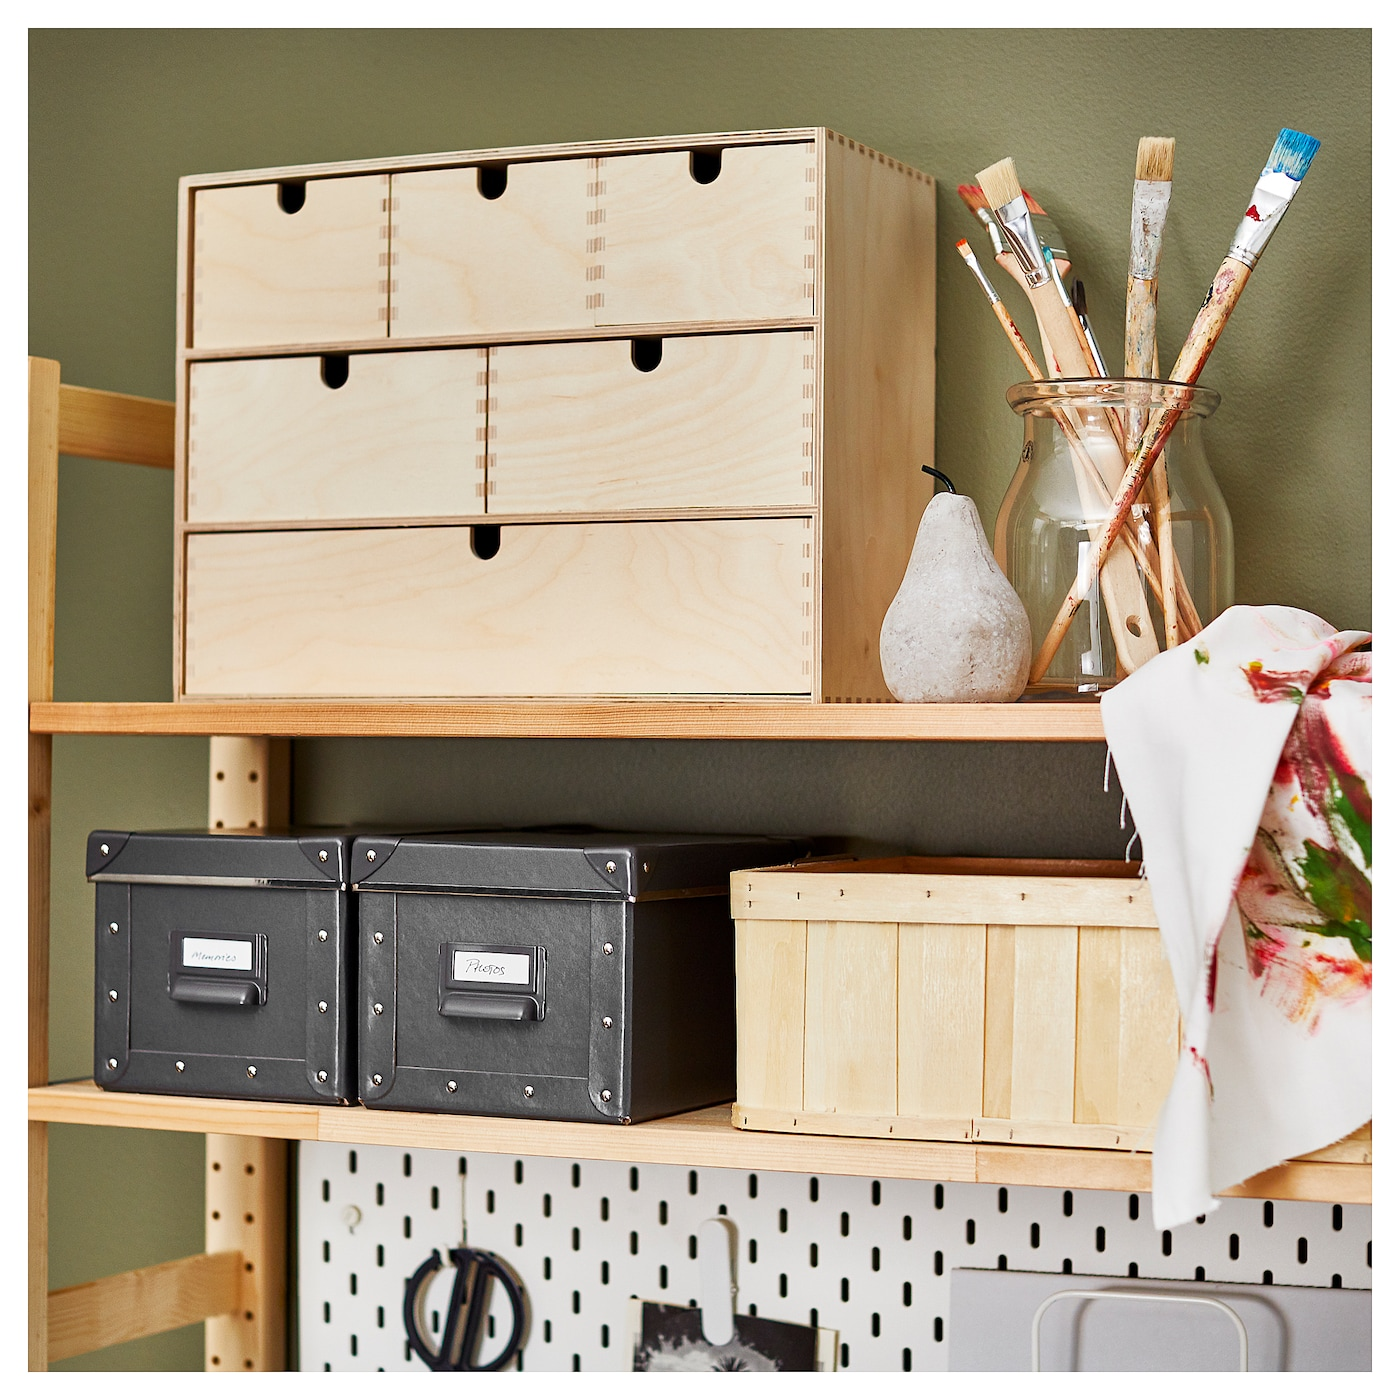 moppe mini chest of drawers birch plywood 42 x 18 x 32 cm - ikea